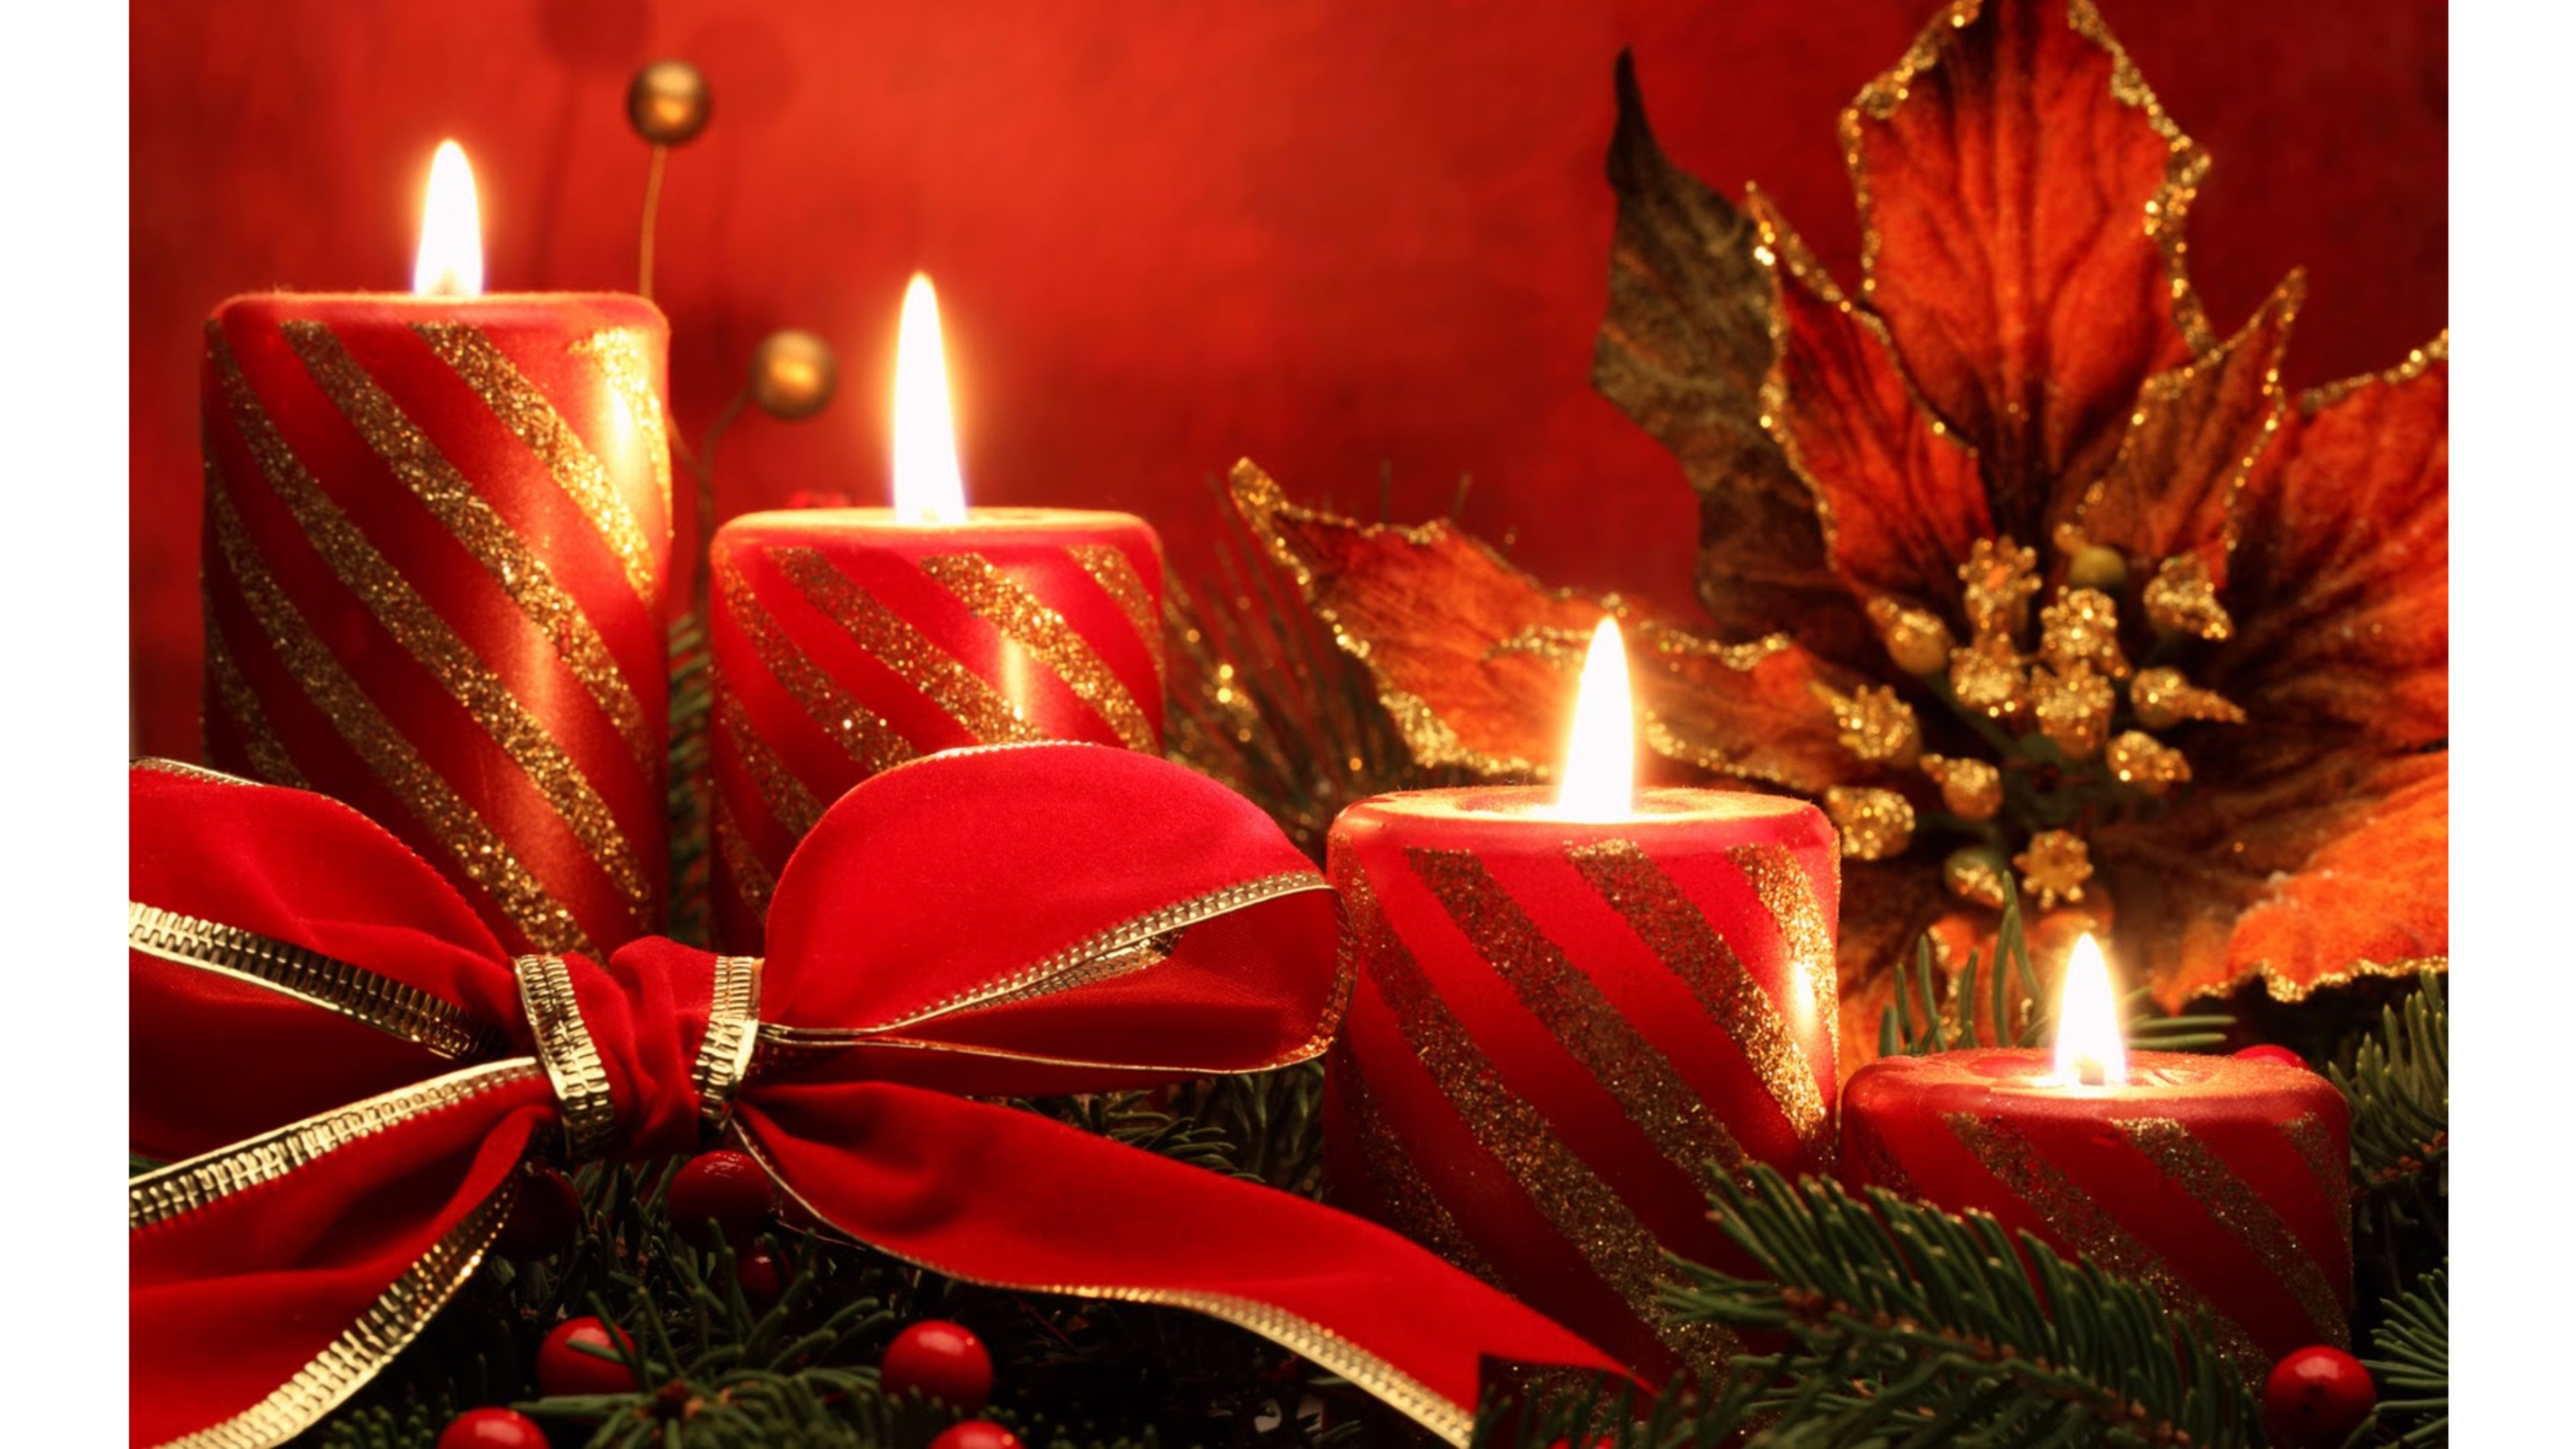 Xmas Love Wallpapers : christmas wallpapers and desktop backgrounds up to 8K [7680x4320] resolution